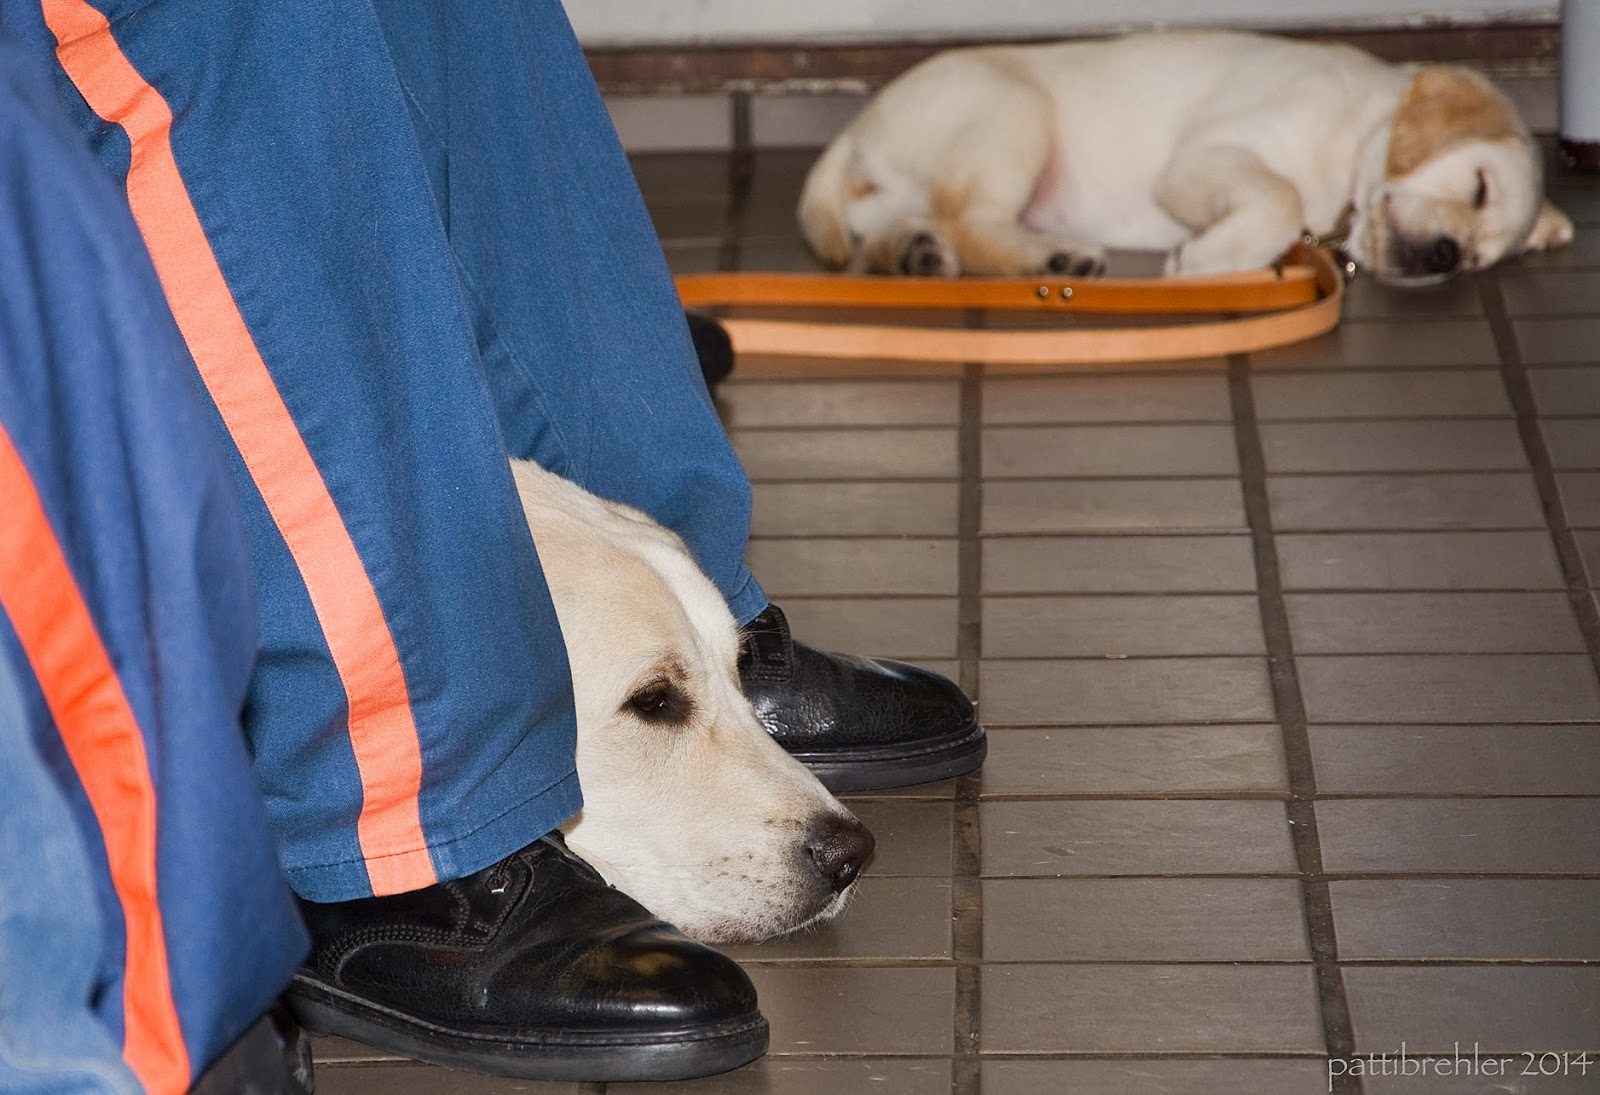 A low-level shot of a small yellow lab in the distance, a bit out of focus. He is laying on his left side, asleep, with his brown leather leash on the floor in front of him. On the left side of the picture is the face of a larger yellow lab peeking out between inmates legs. They are wearing the blue prison pants with an orange stripe on the side.